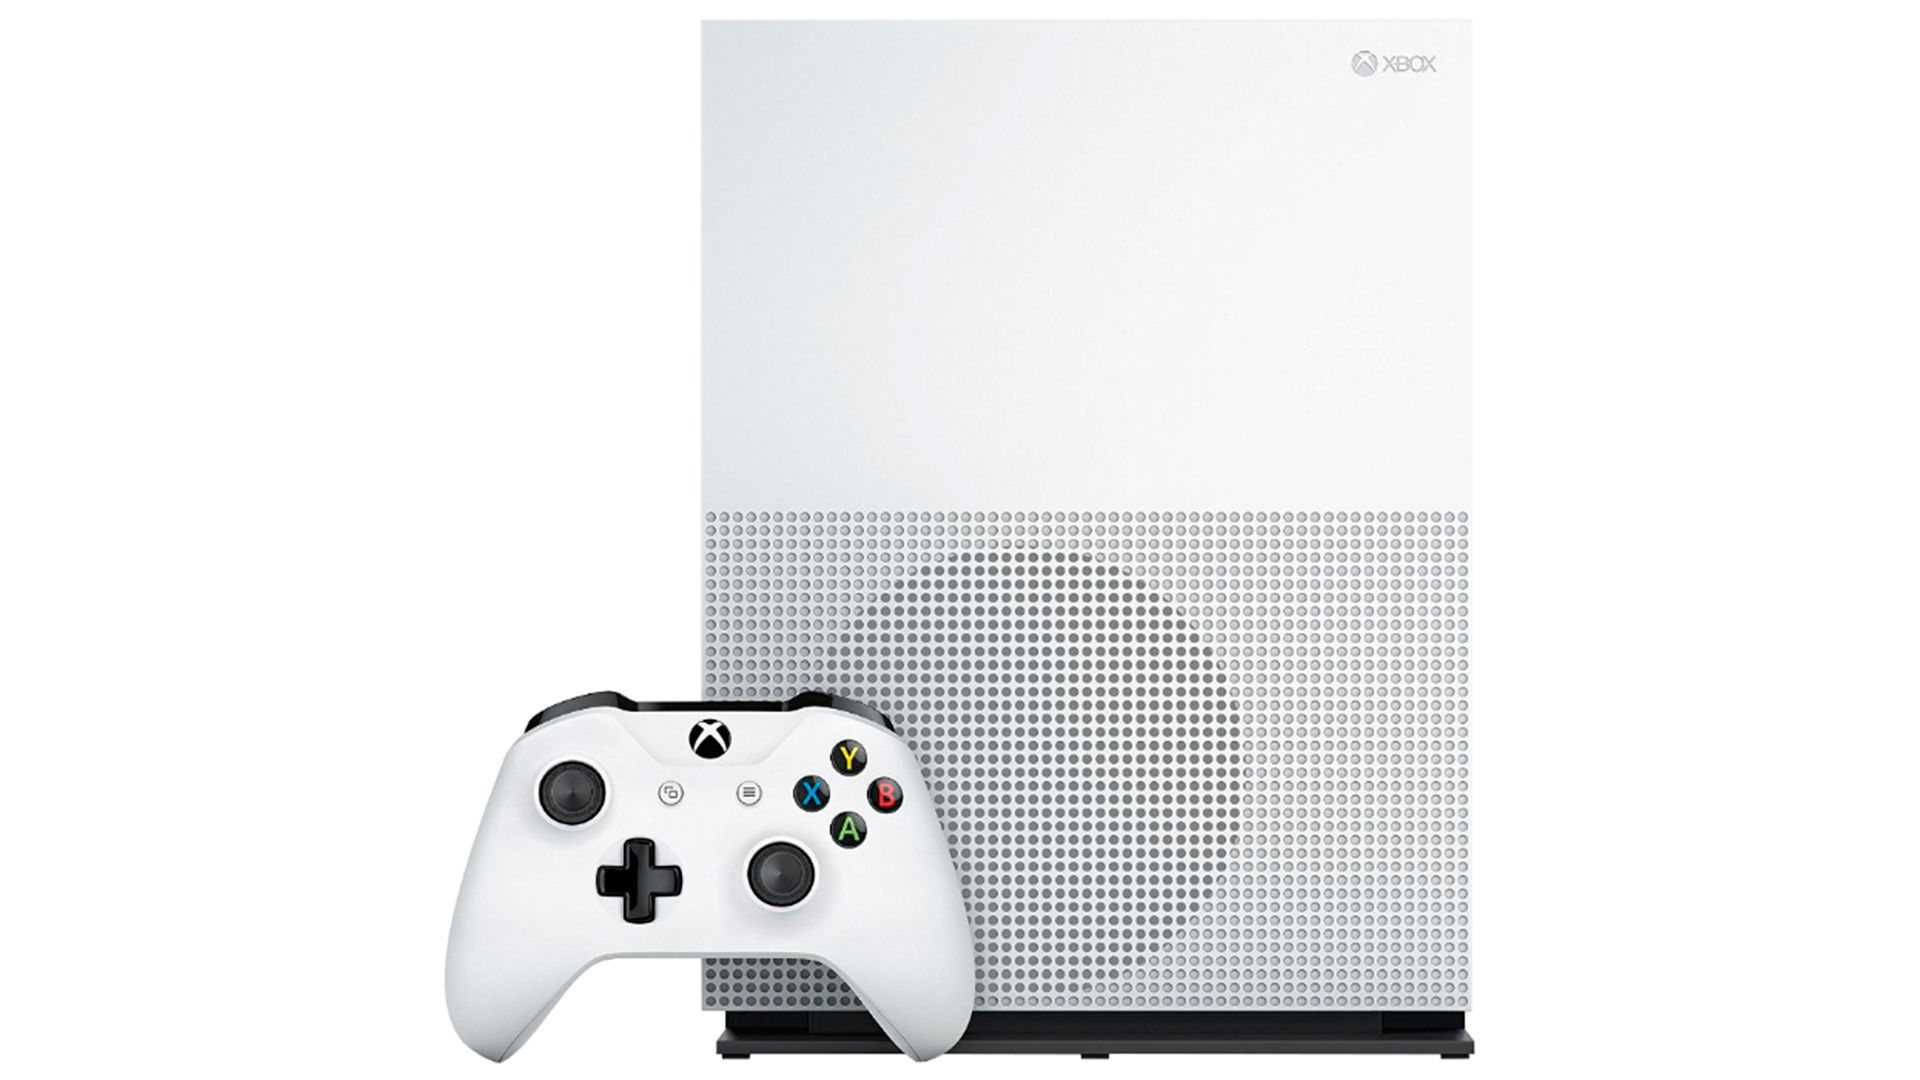 xbox one s 1tb fifa 17. Black Bedroom Furniture Sets. Home Design Ideas